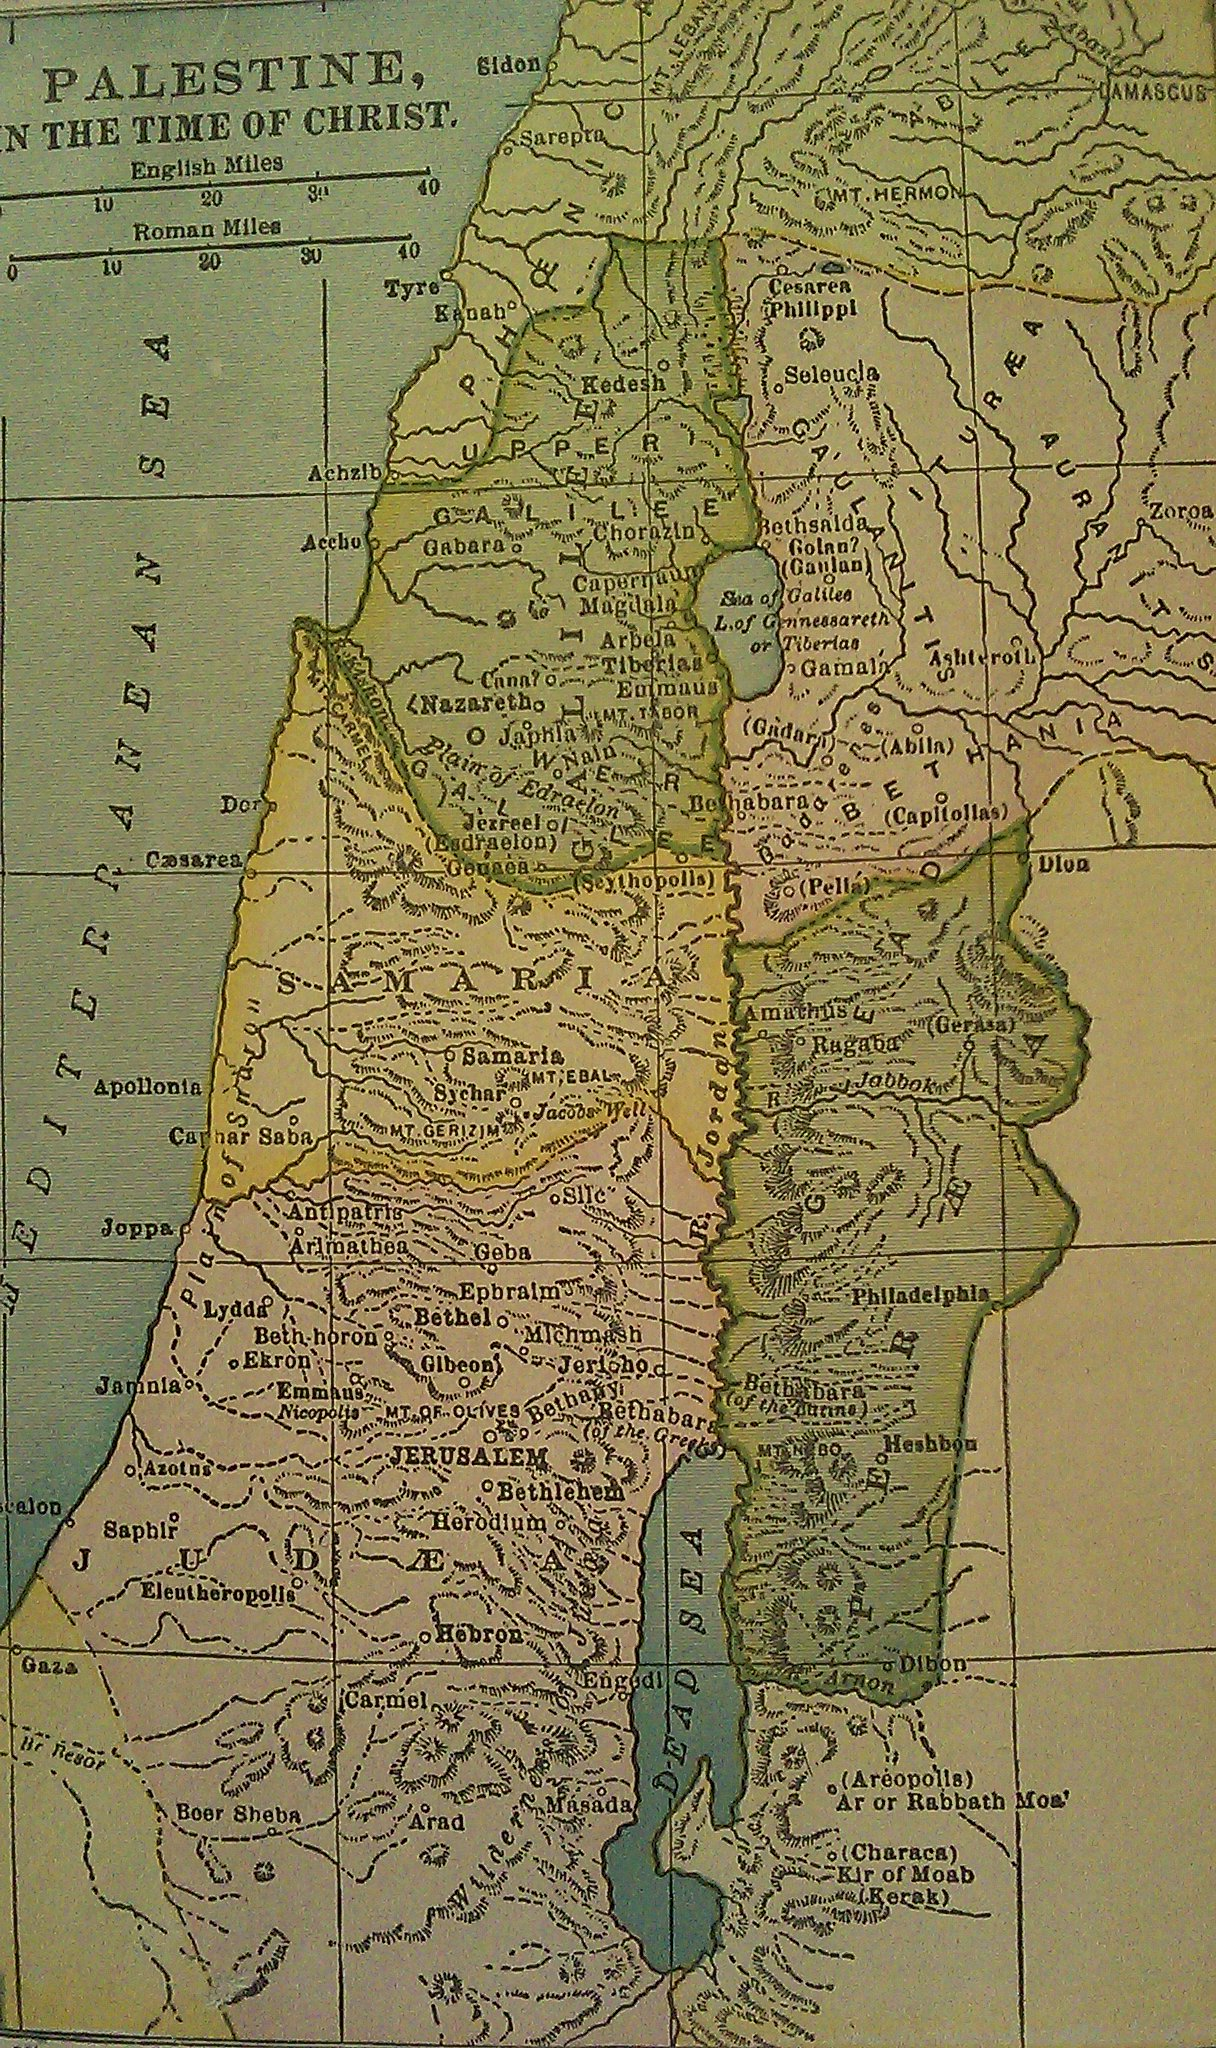 Palestine – In Christ#39;s Time